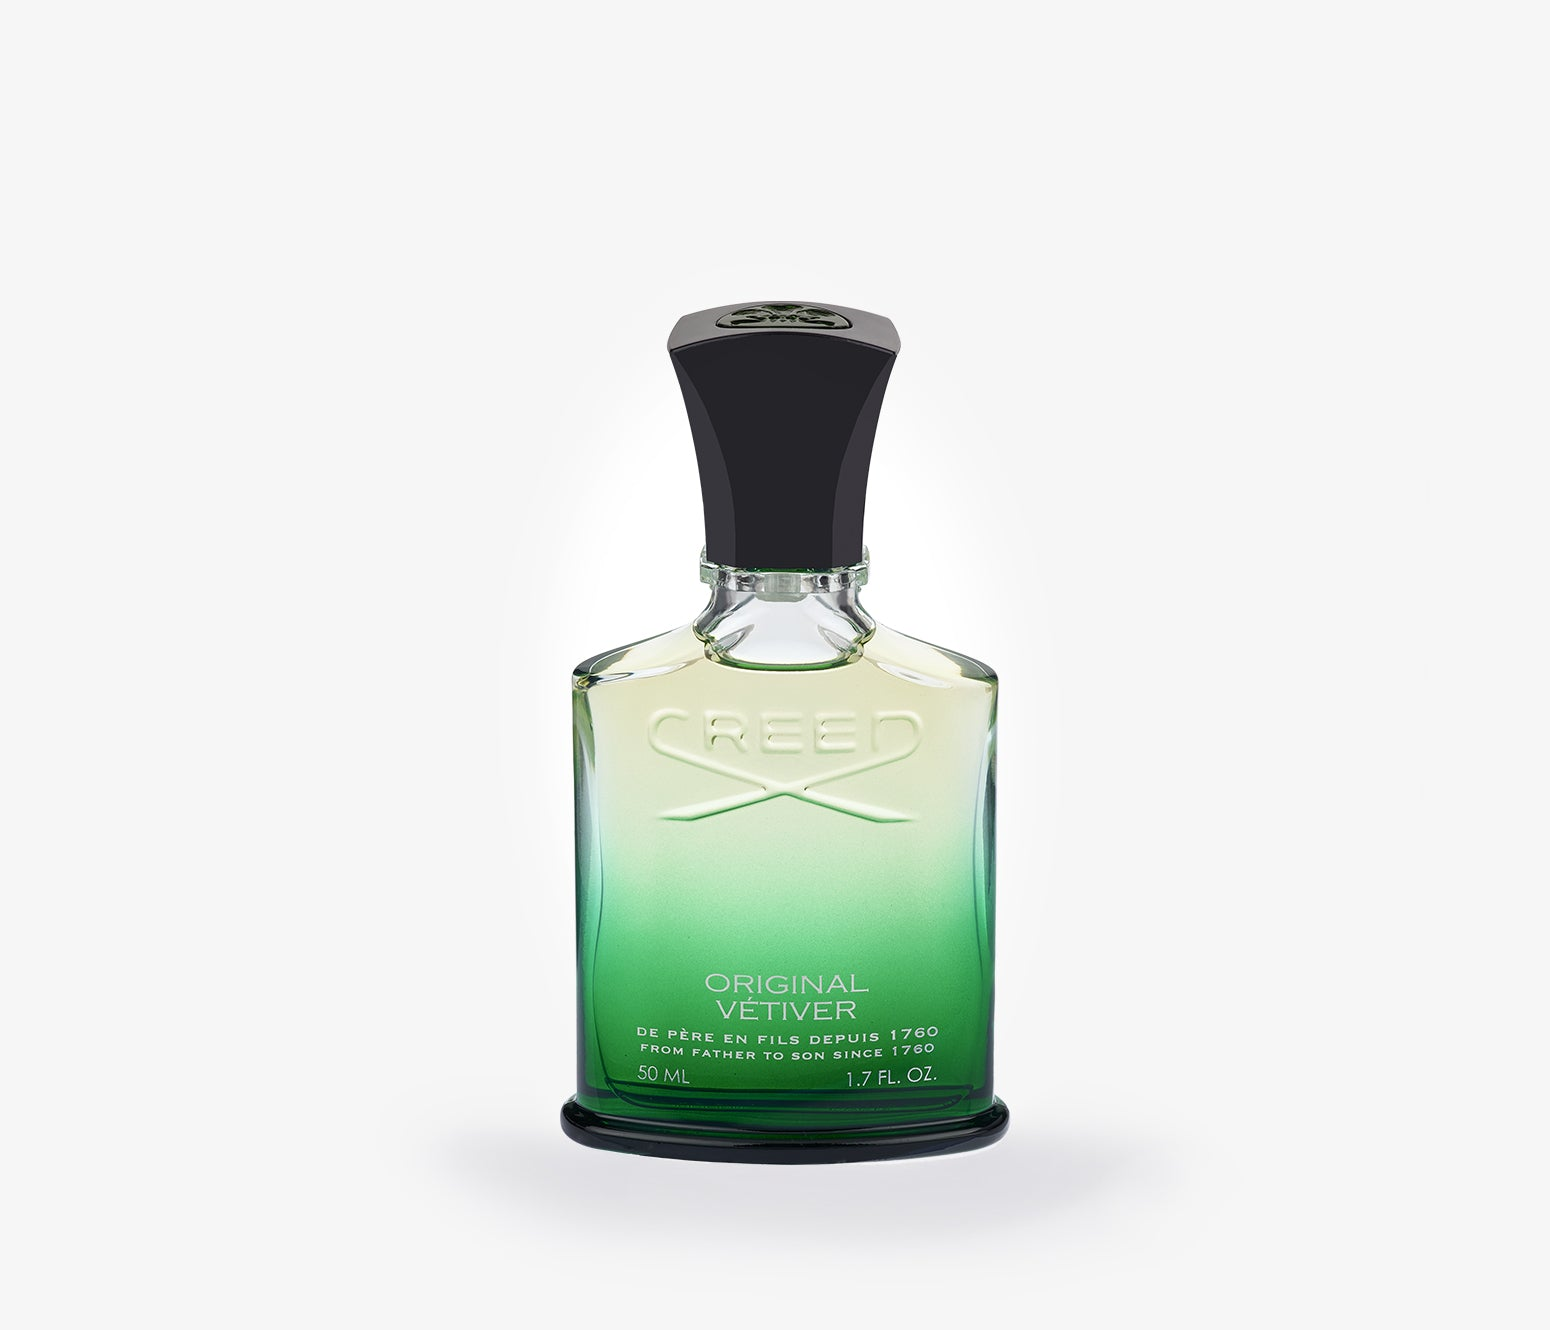 Creed - Original Vetiver - 100ml - FOT001 - Product Image - Fragrance - Les Senteurs